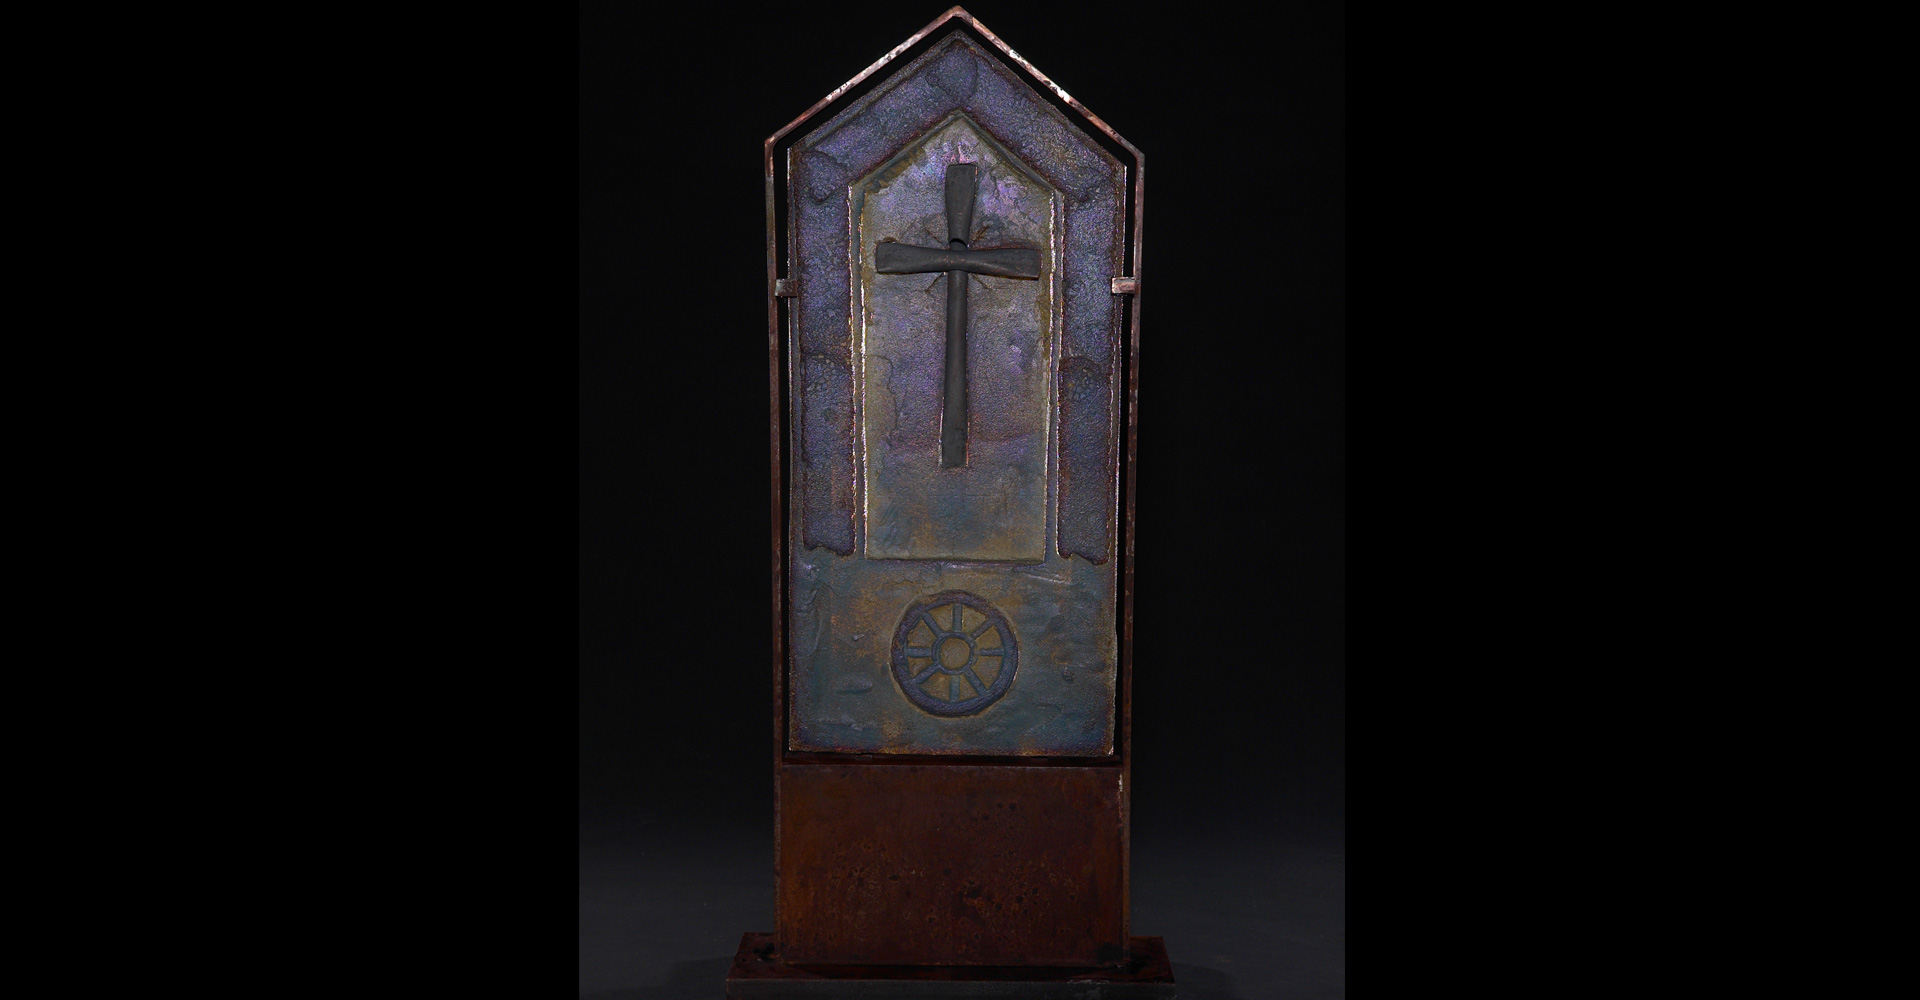 Khachkar Metallic sand cast glass art sculpture by Marlene Rose